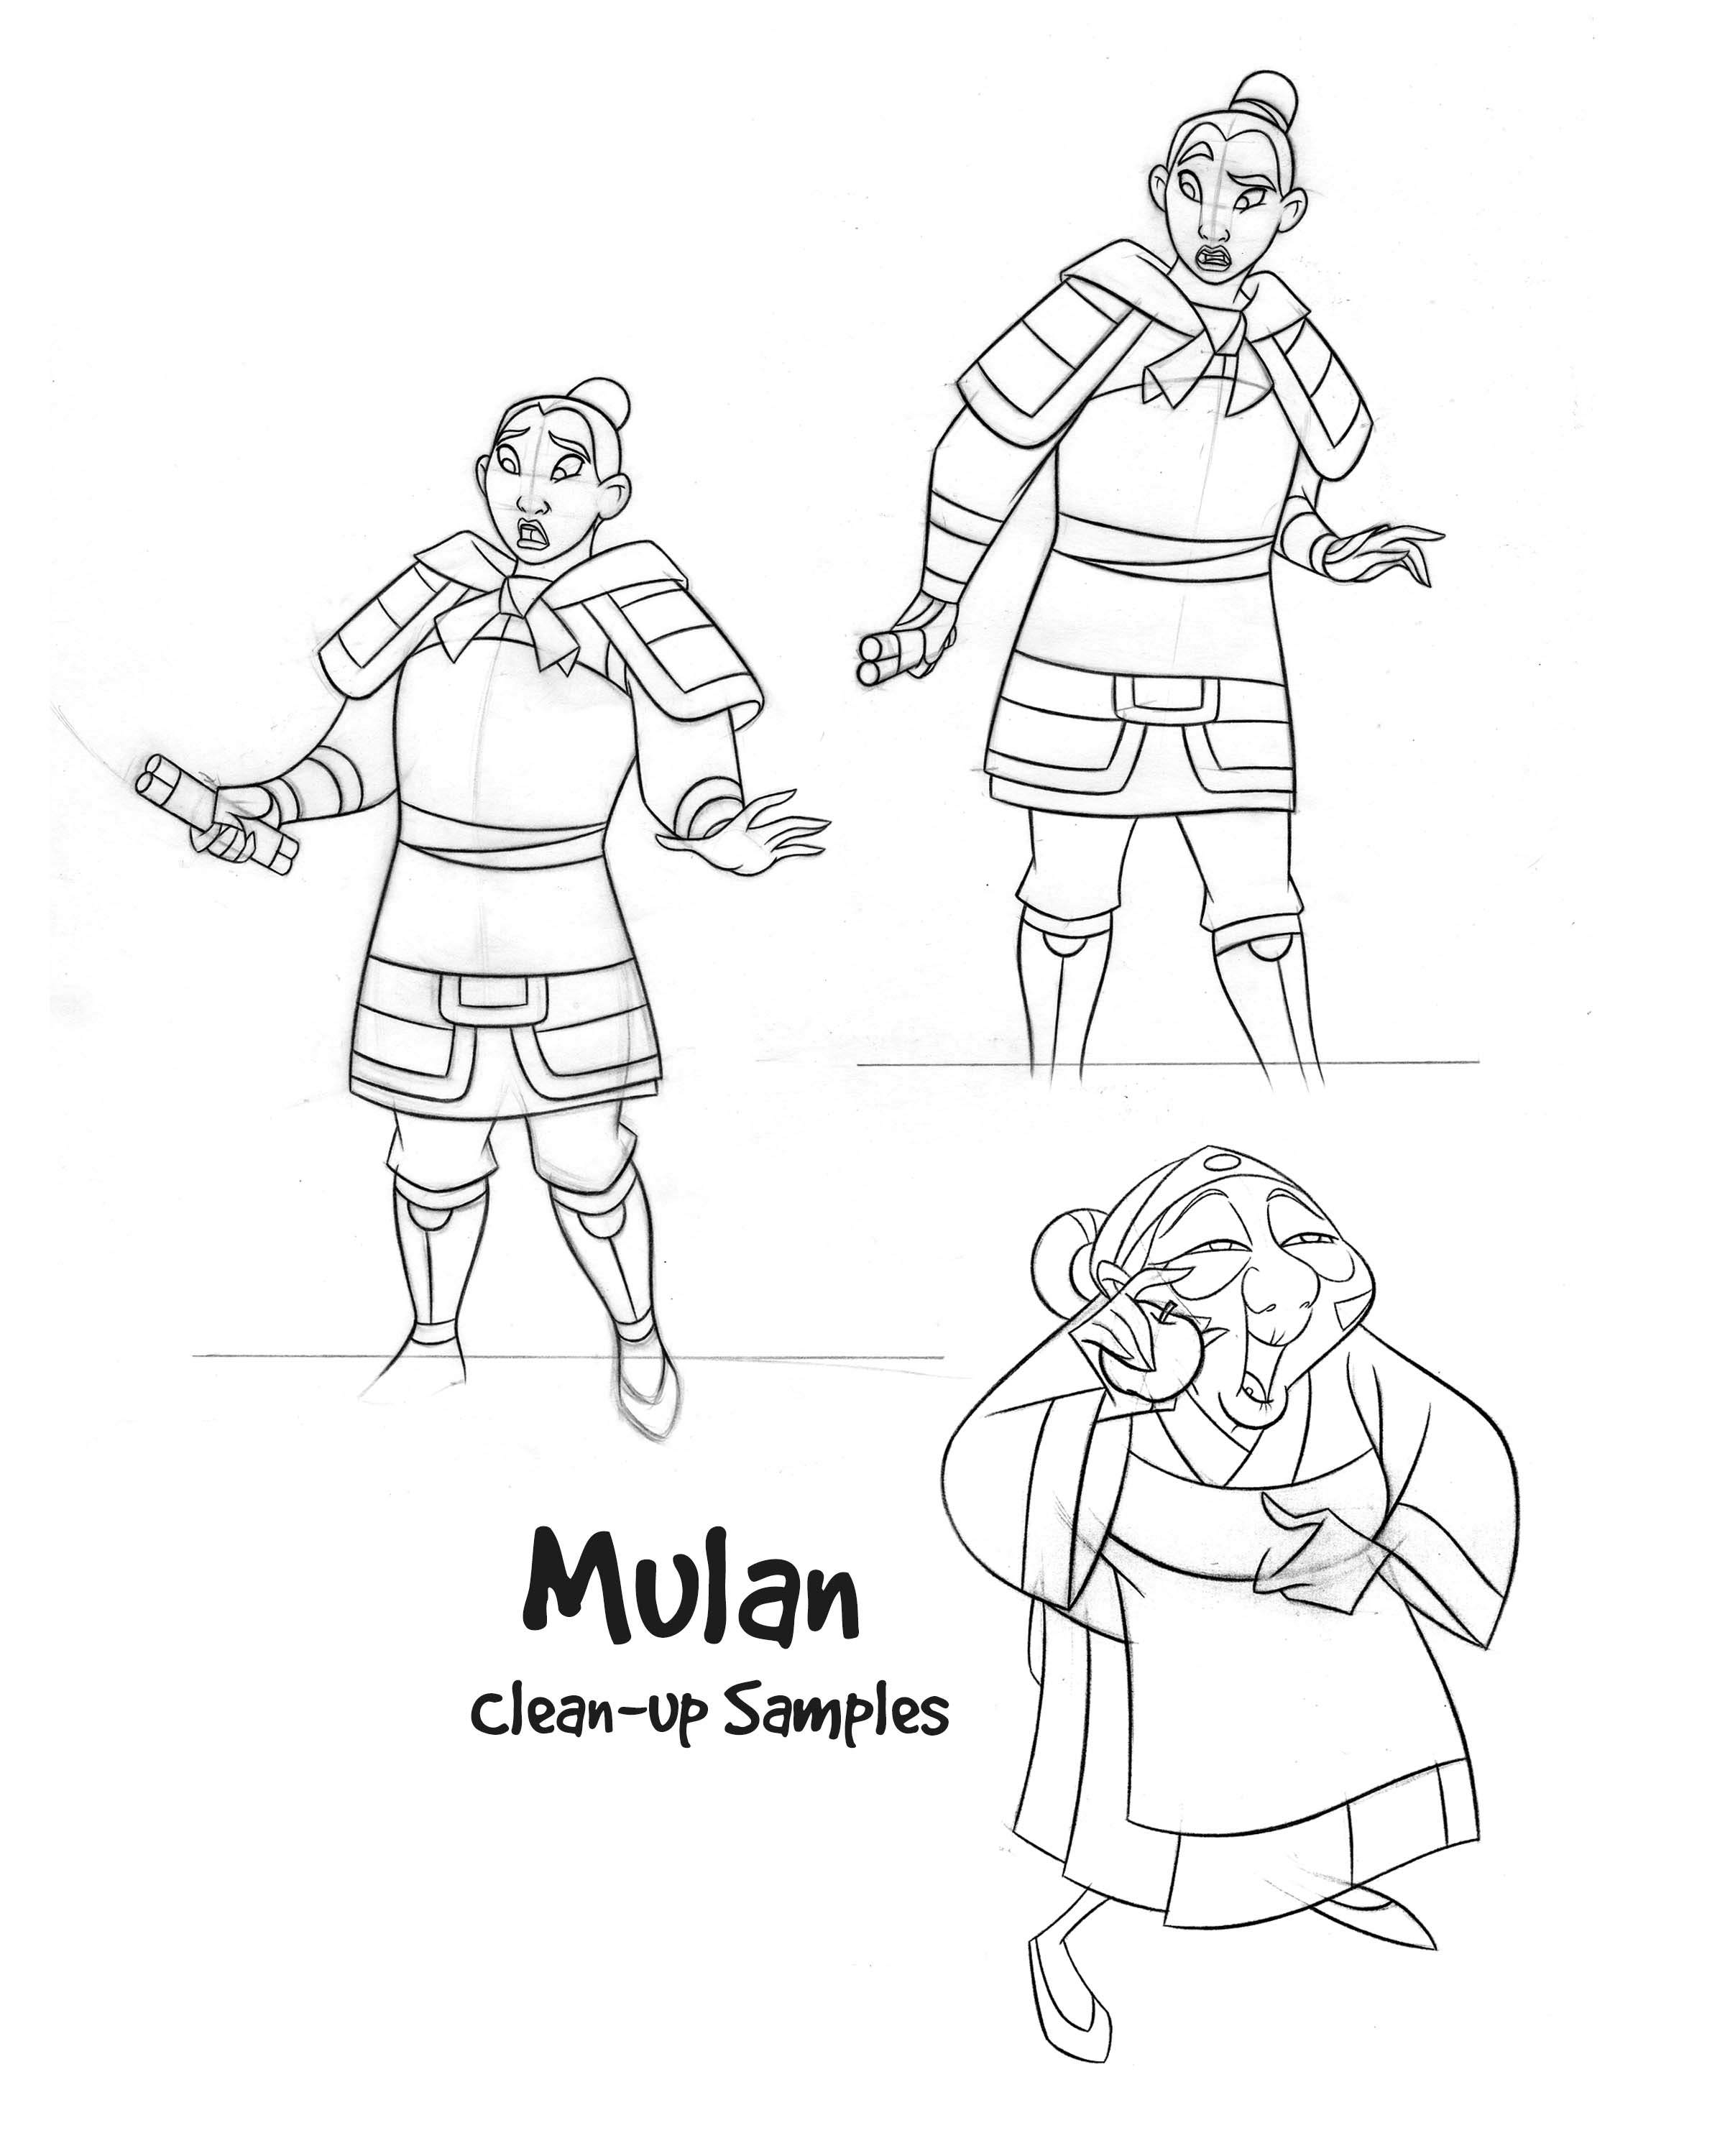 Mulan Cleanup Samples2.jpg